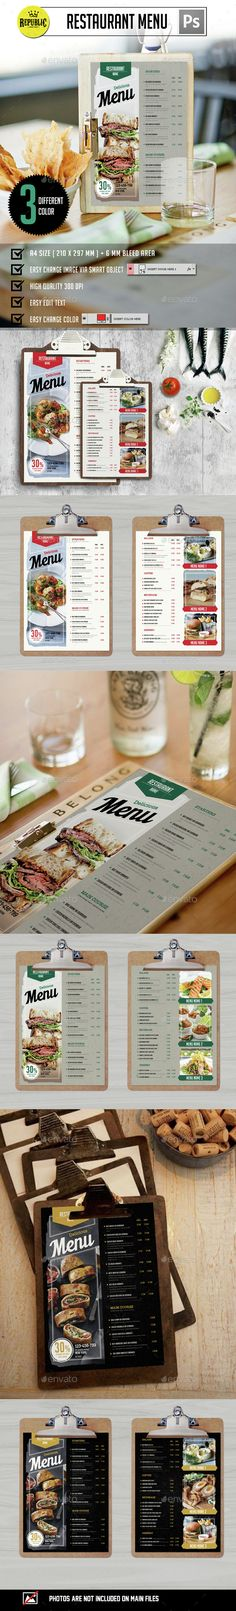 Clean restaurant menu ad clean aff restaurant menu food and drink menu board food and drink menu board menu board template powerpoint new novisign s menu board templates food and drink menu board Restaurant Menu Template, Restaurant Menu Design, Modern Restaurant, Restaurant Restaurant, Web Design, Food Design, Lunch Menu, Dinner Menu, Corporate Design